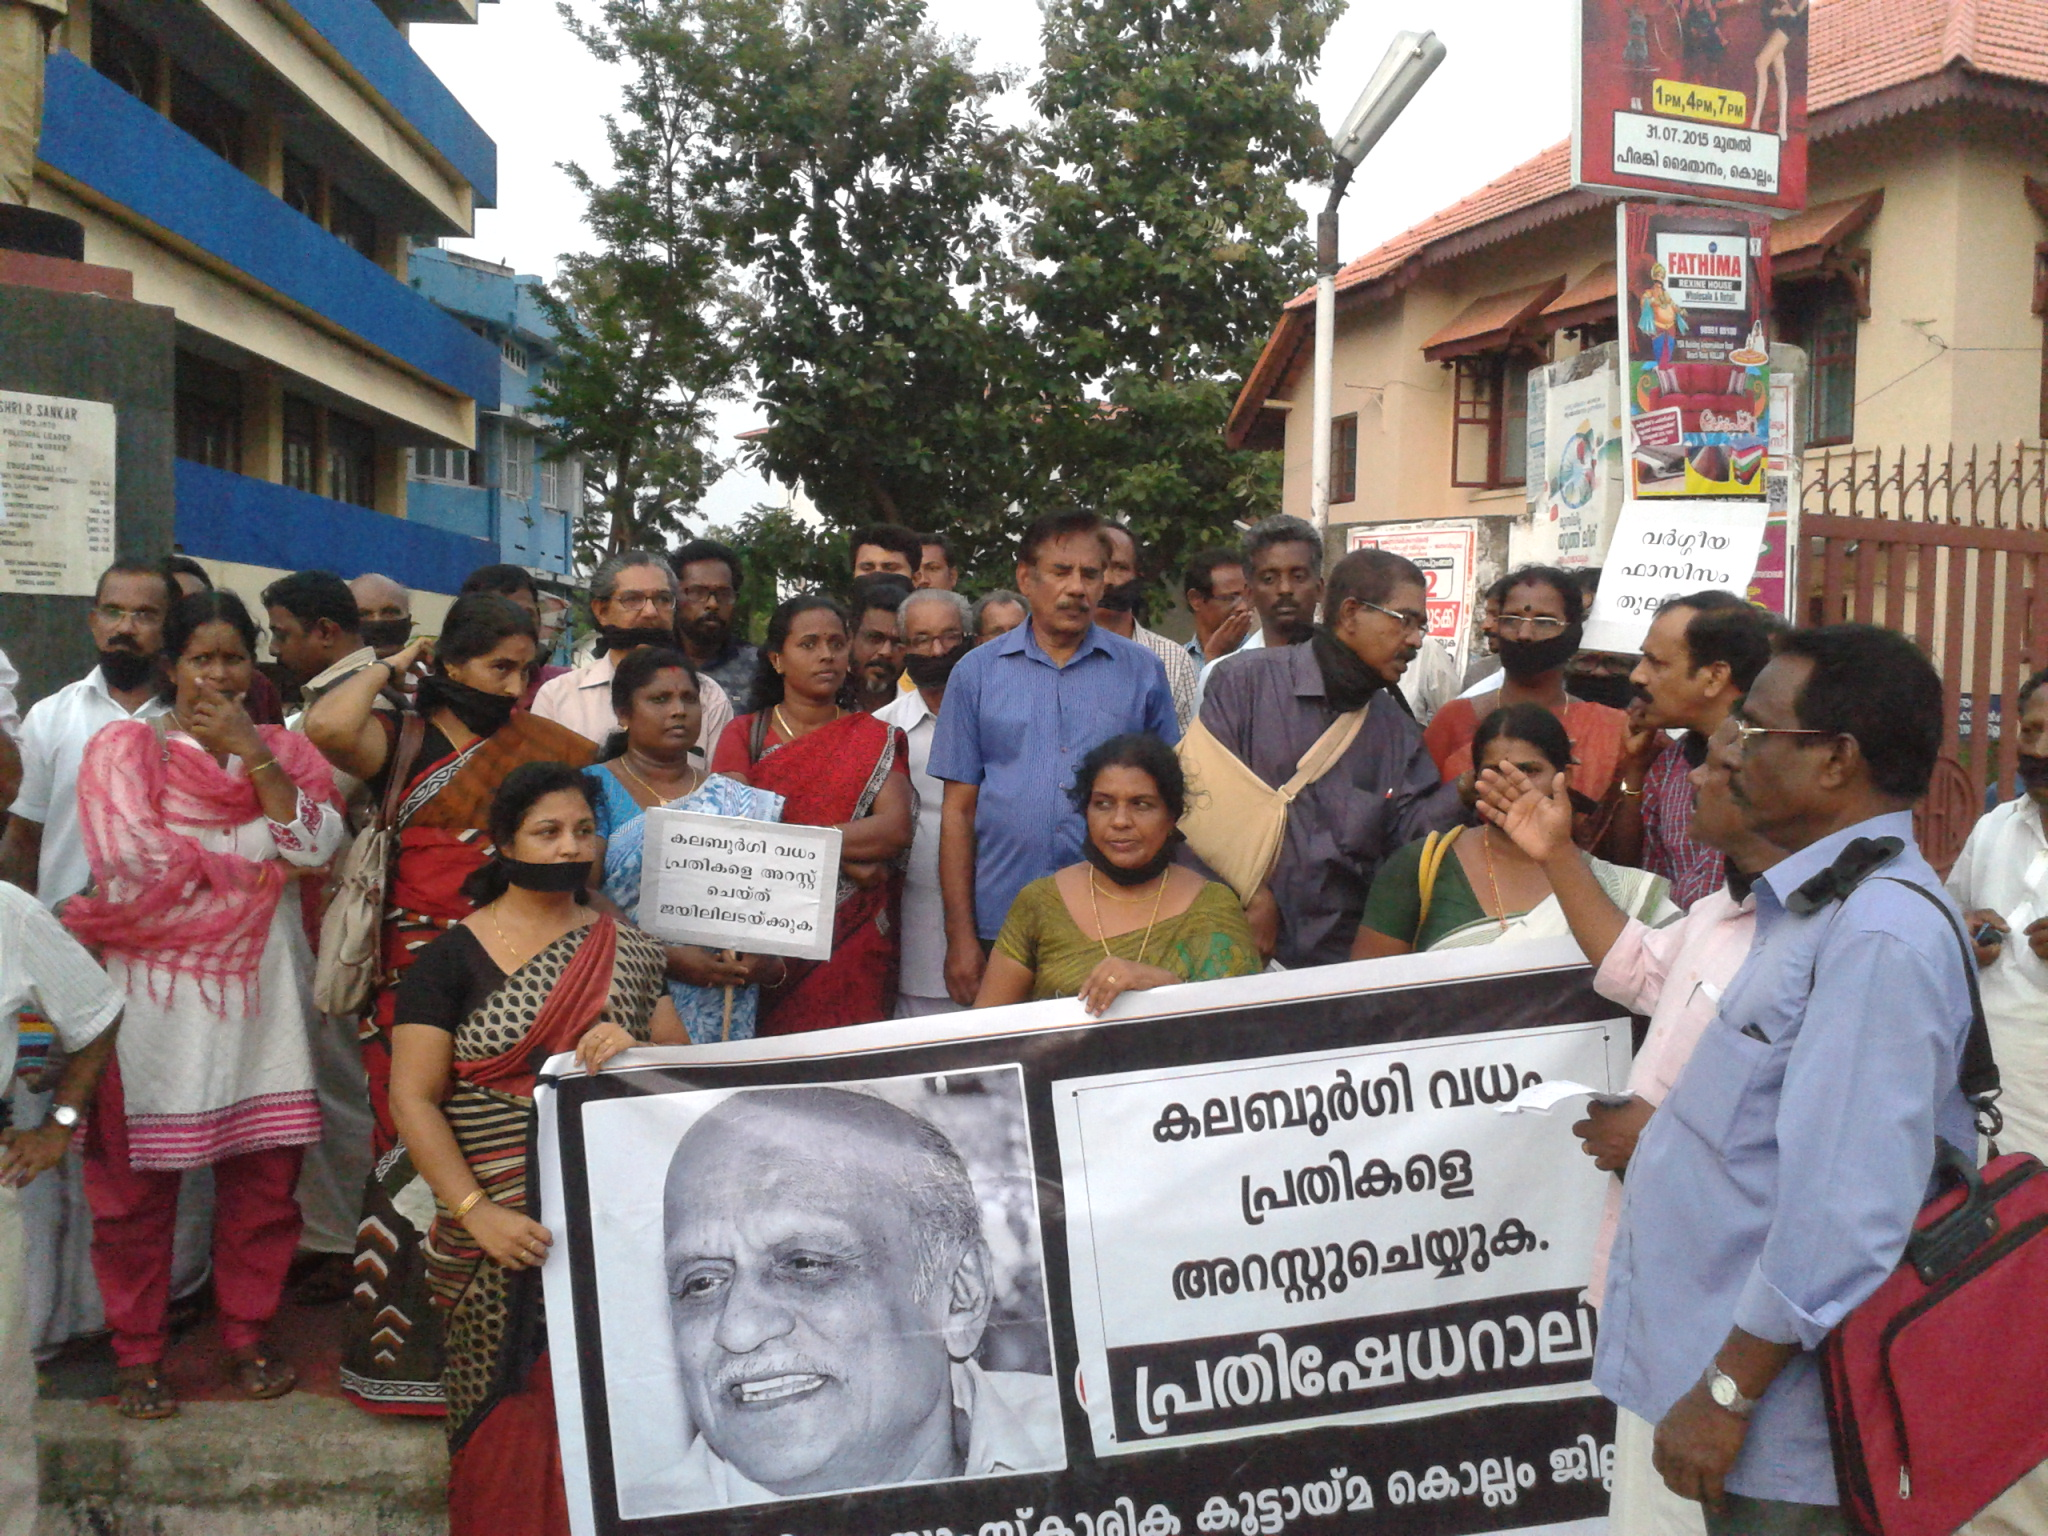 A protest against the murder of M.M. Kalburgi. Credit: The Wire